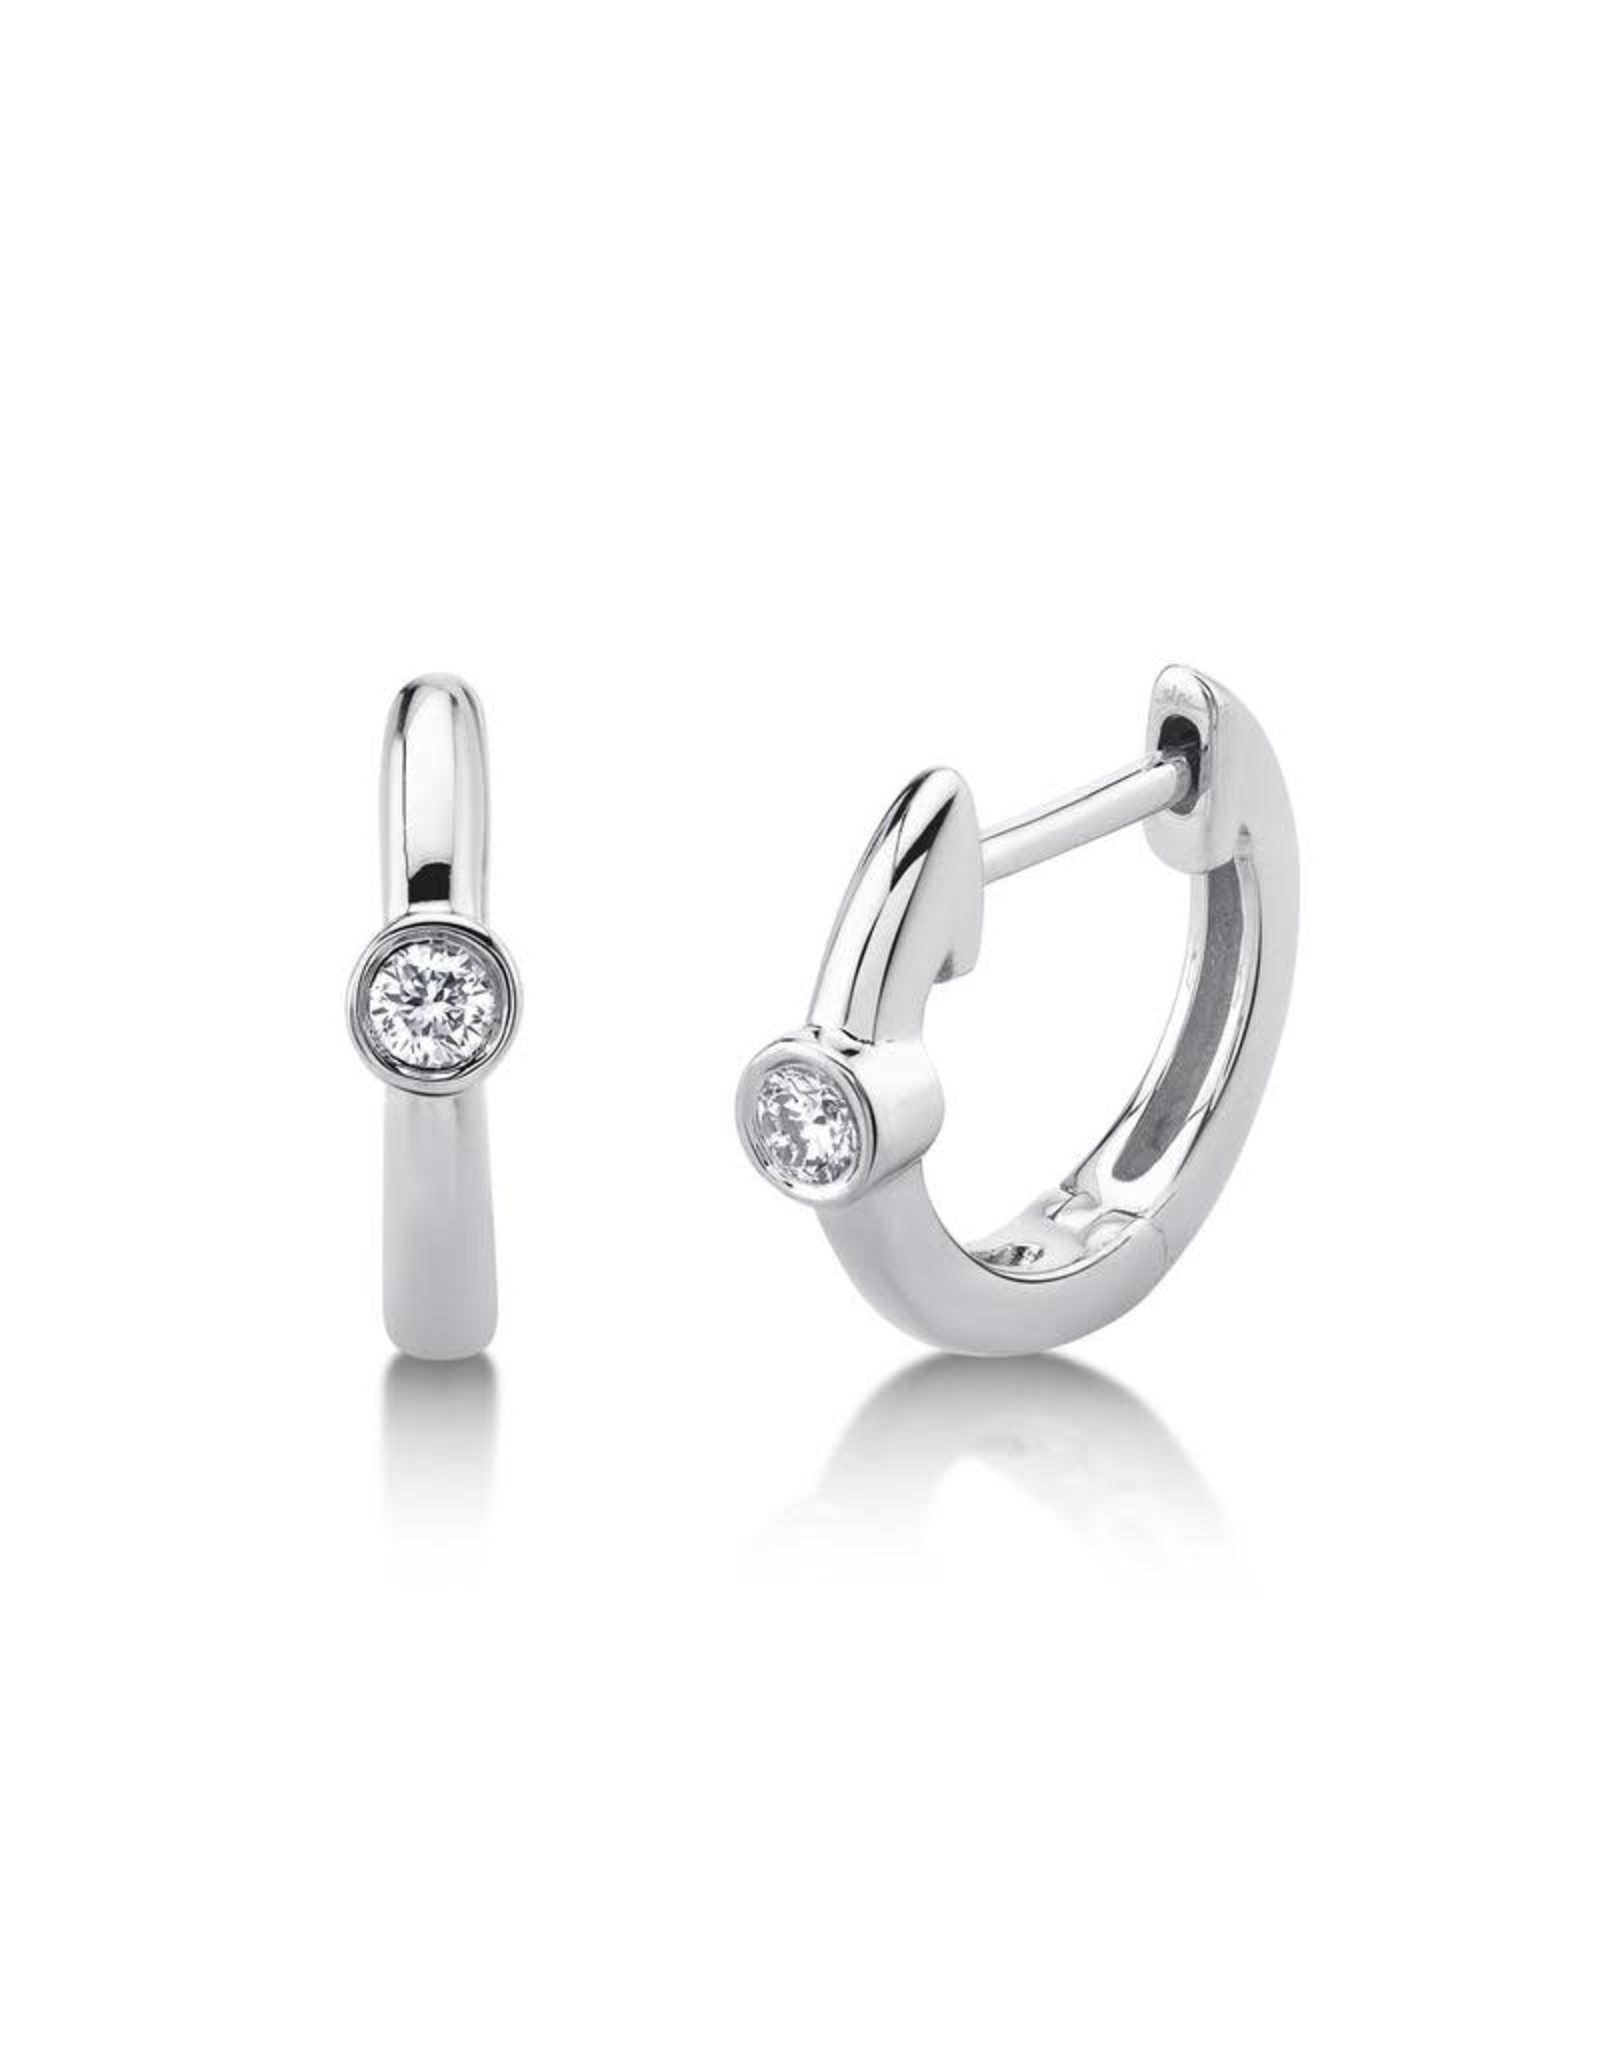 14K White Gold Bezel Diamond Huggie Earrings, D: 0.06ct